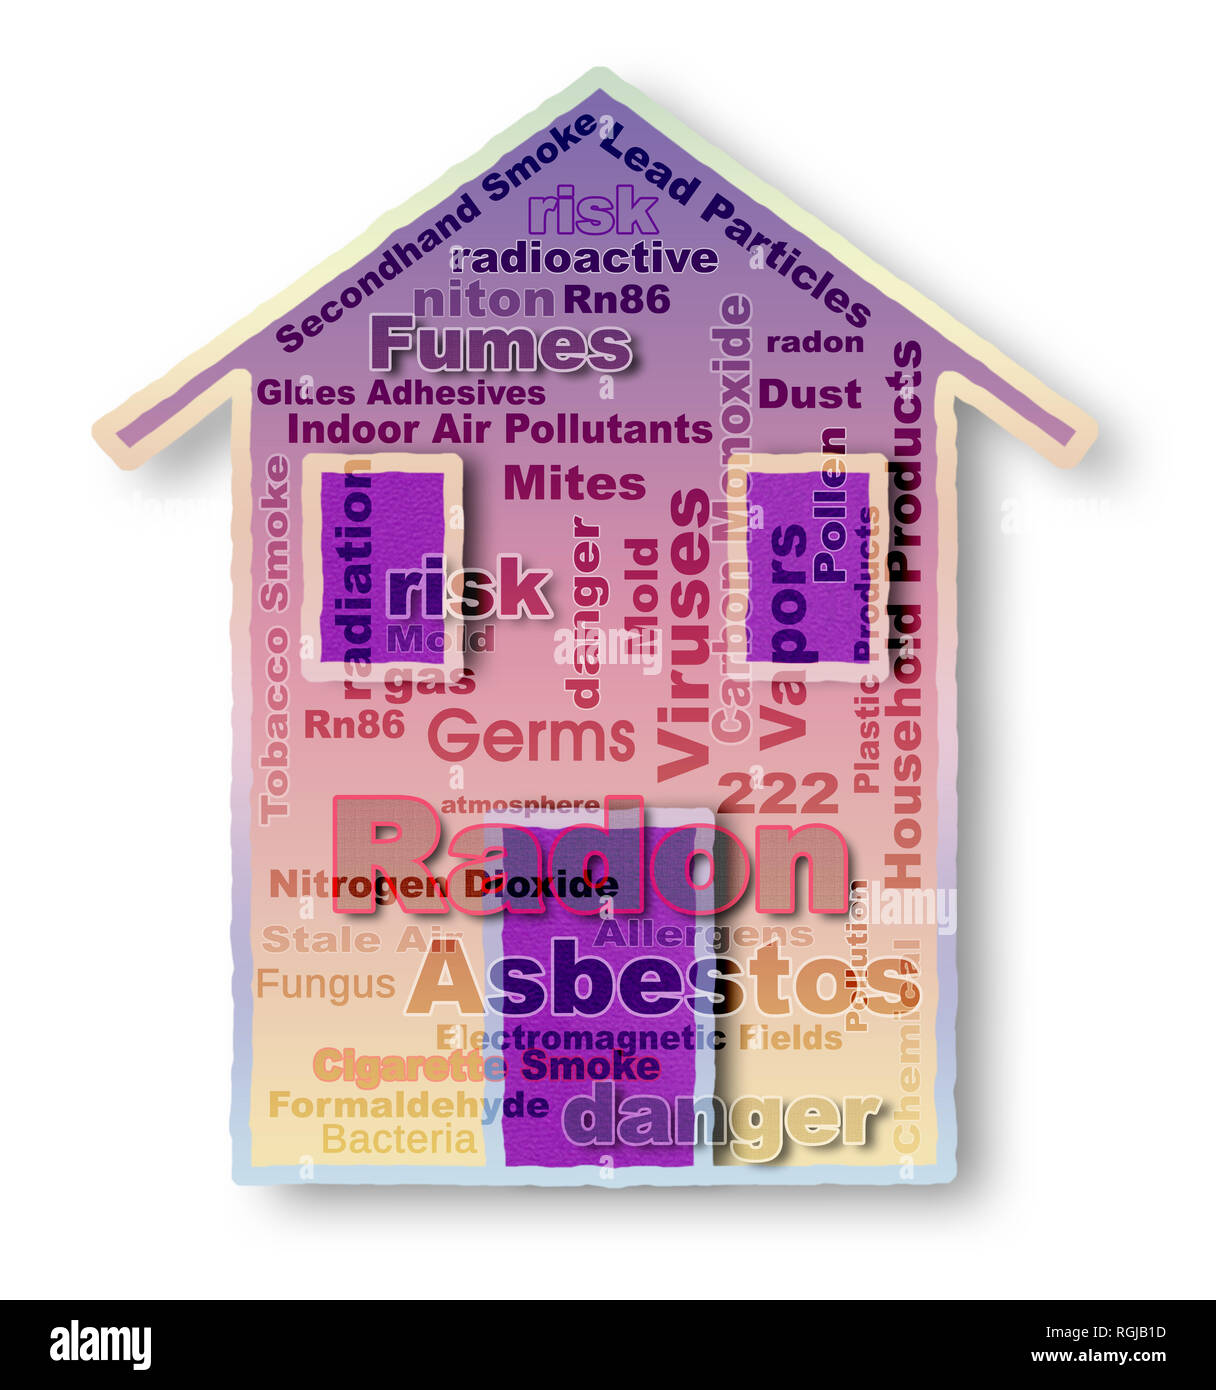 Check list of indoor pollutants - concept image - Stock Image